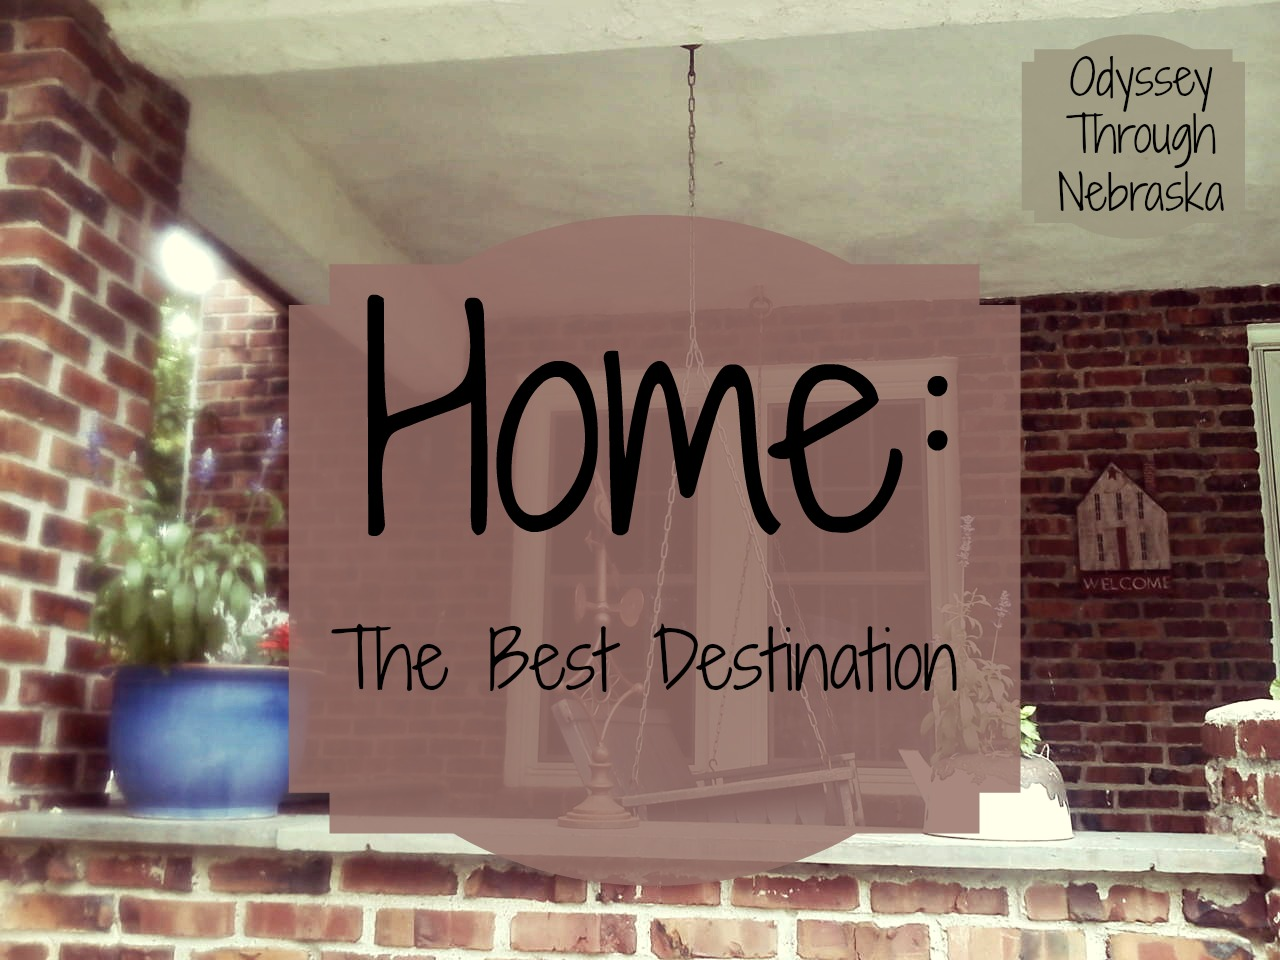 Home is the best destination after traveling